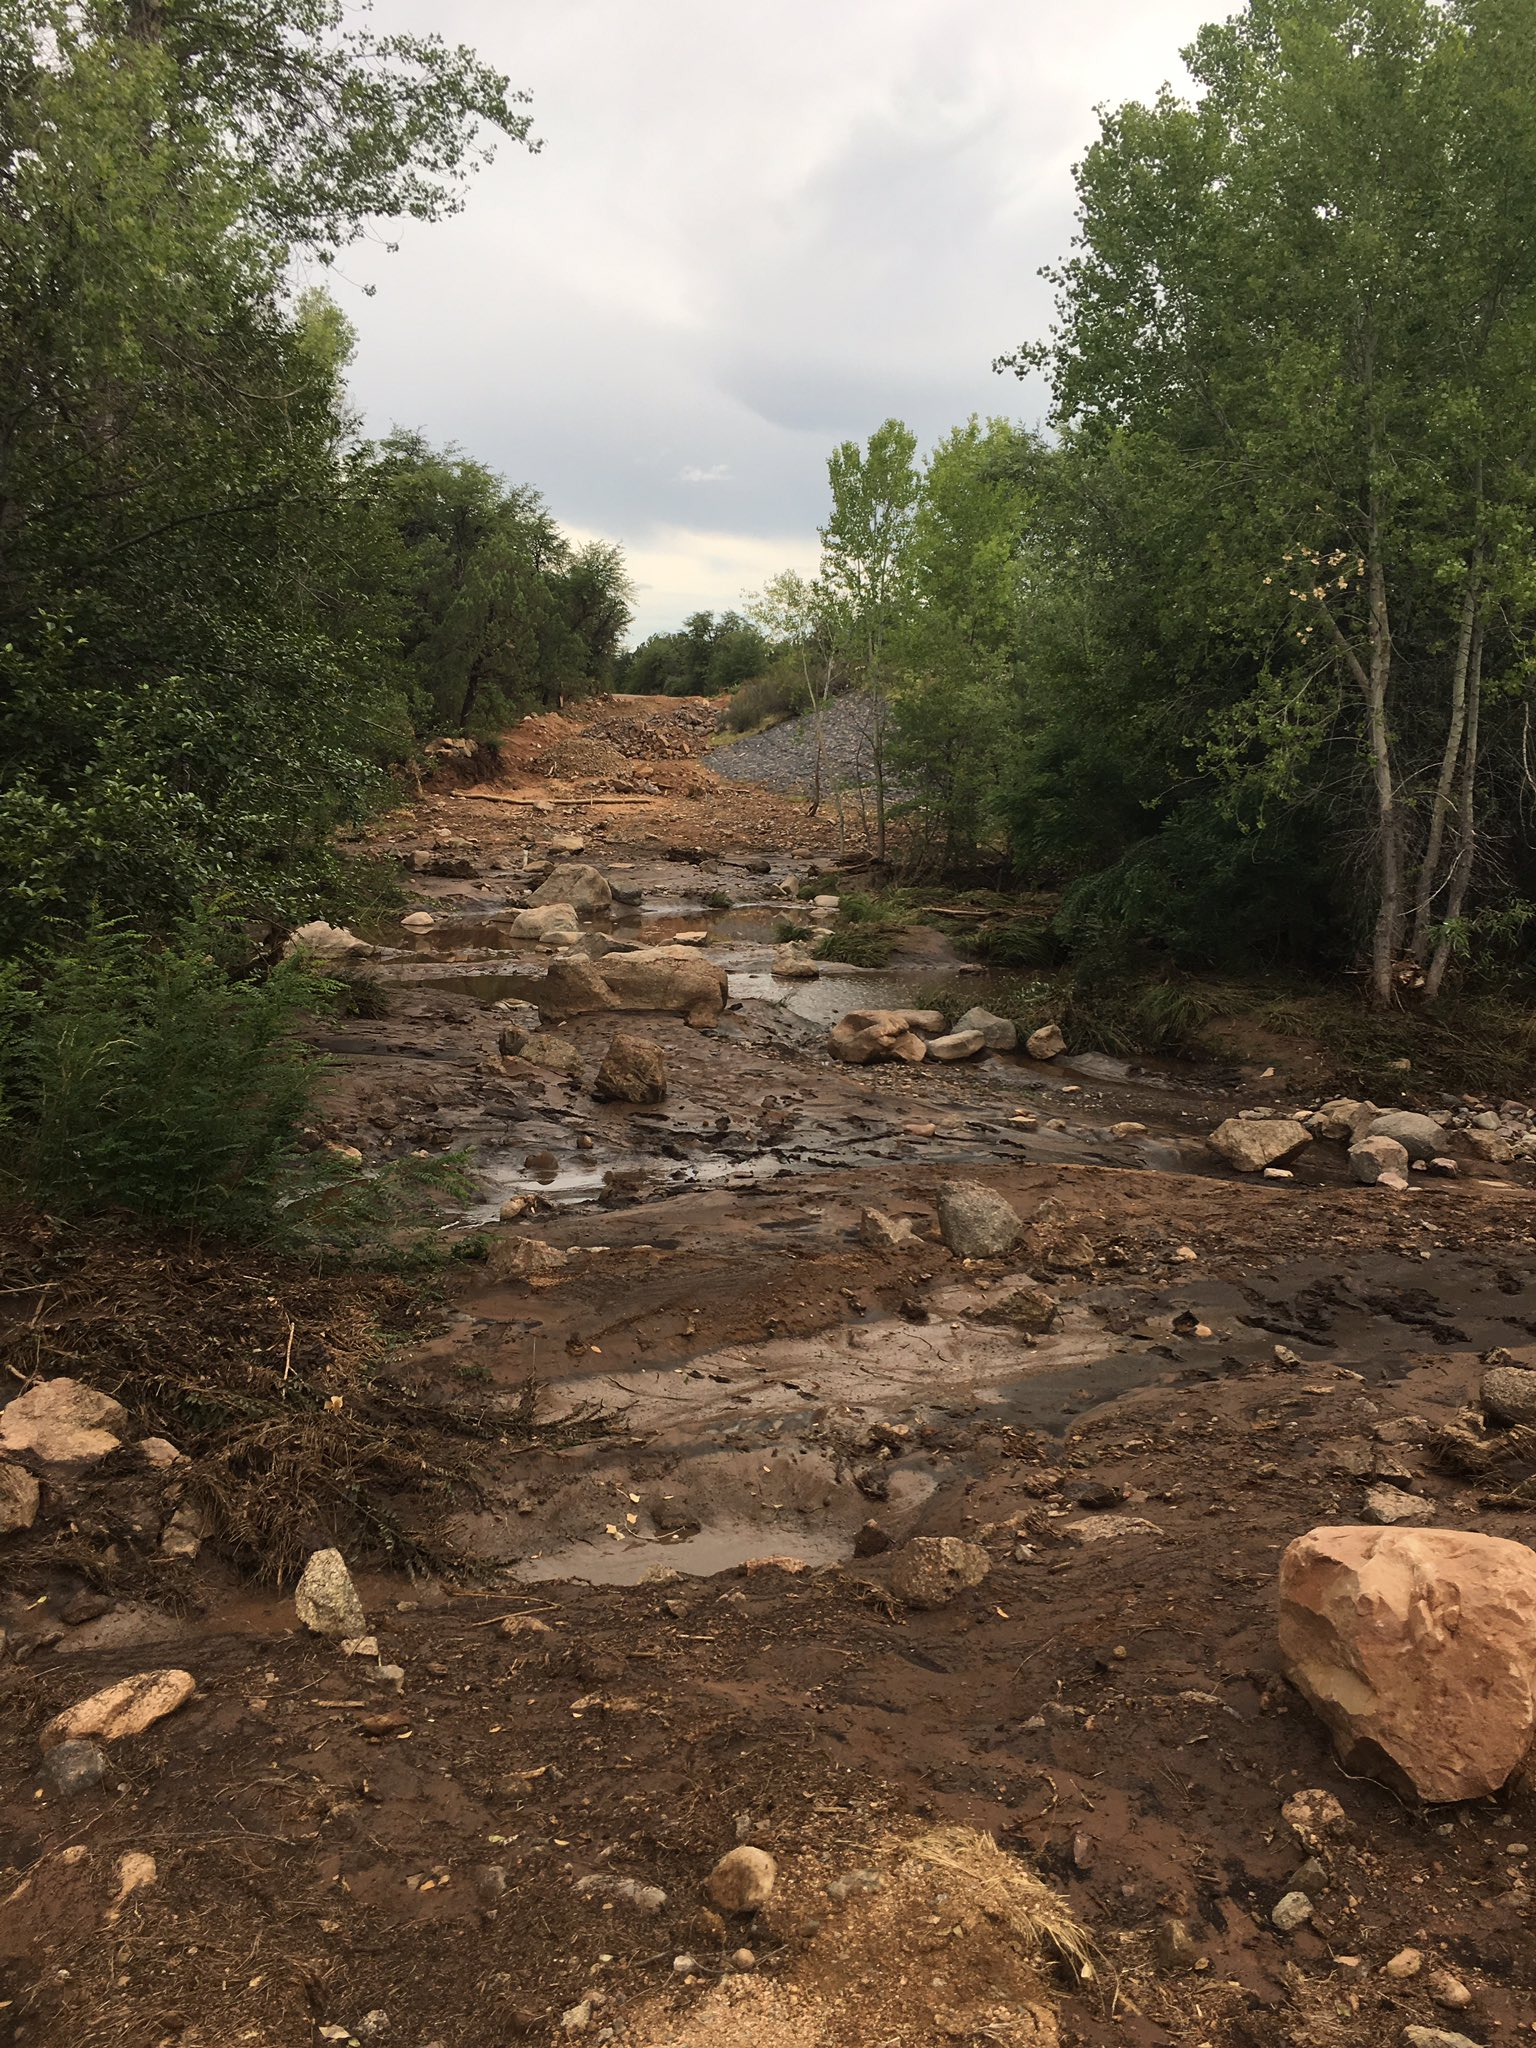 Nine people are dead and one is still missing in the #Payson flash flood. A 40-foot-wide wall of water swept up debris and 14 people. https://t.co/5PLSjiVosE